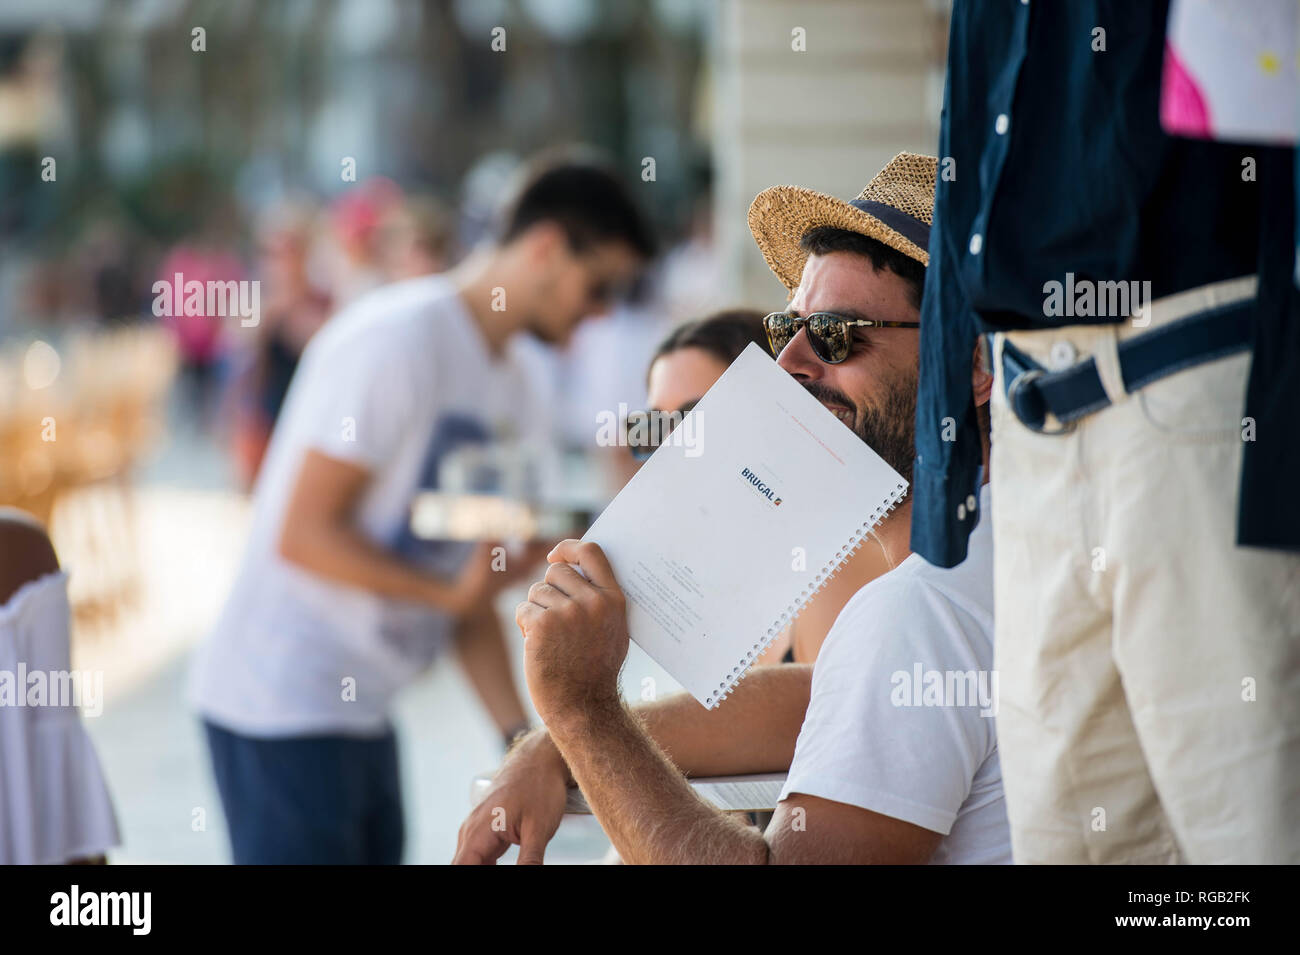 Friday  31 August 2018  Pictured: A man grins on the street with a straw hat  Re:  General Views of Hvar, Croatia - Stock Image